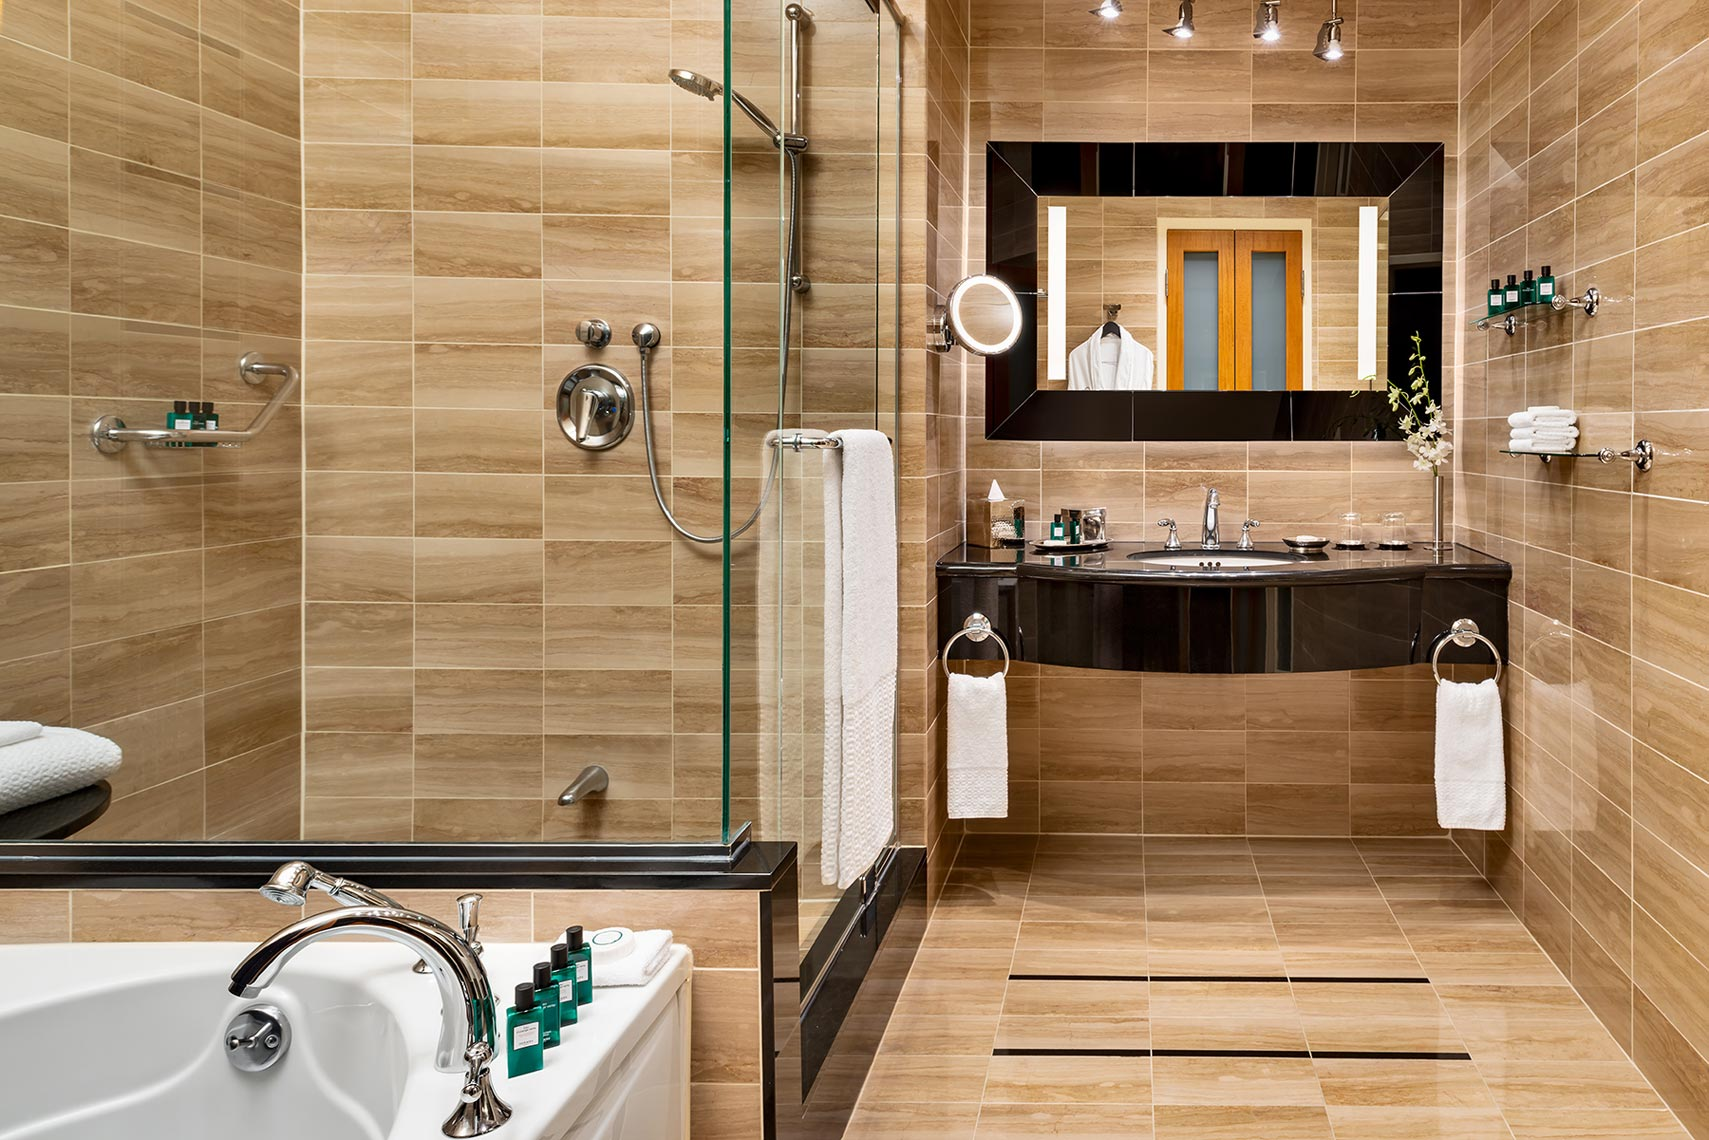 sm-011-R_Opera_Suite_Bathroom_Sofitel_Mtl